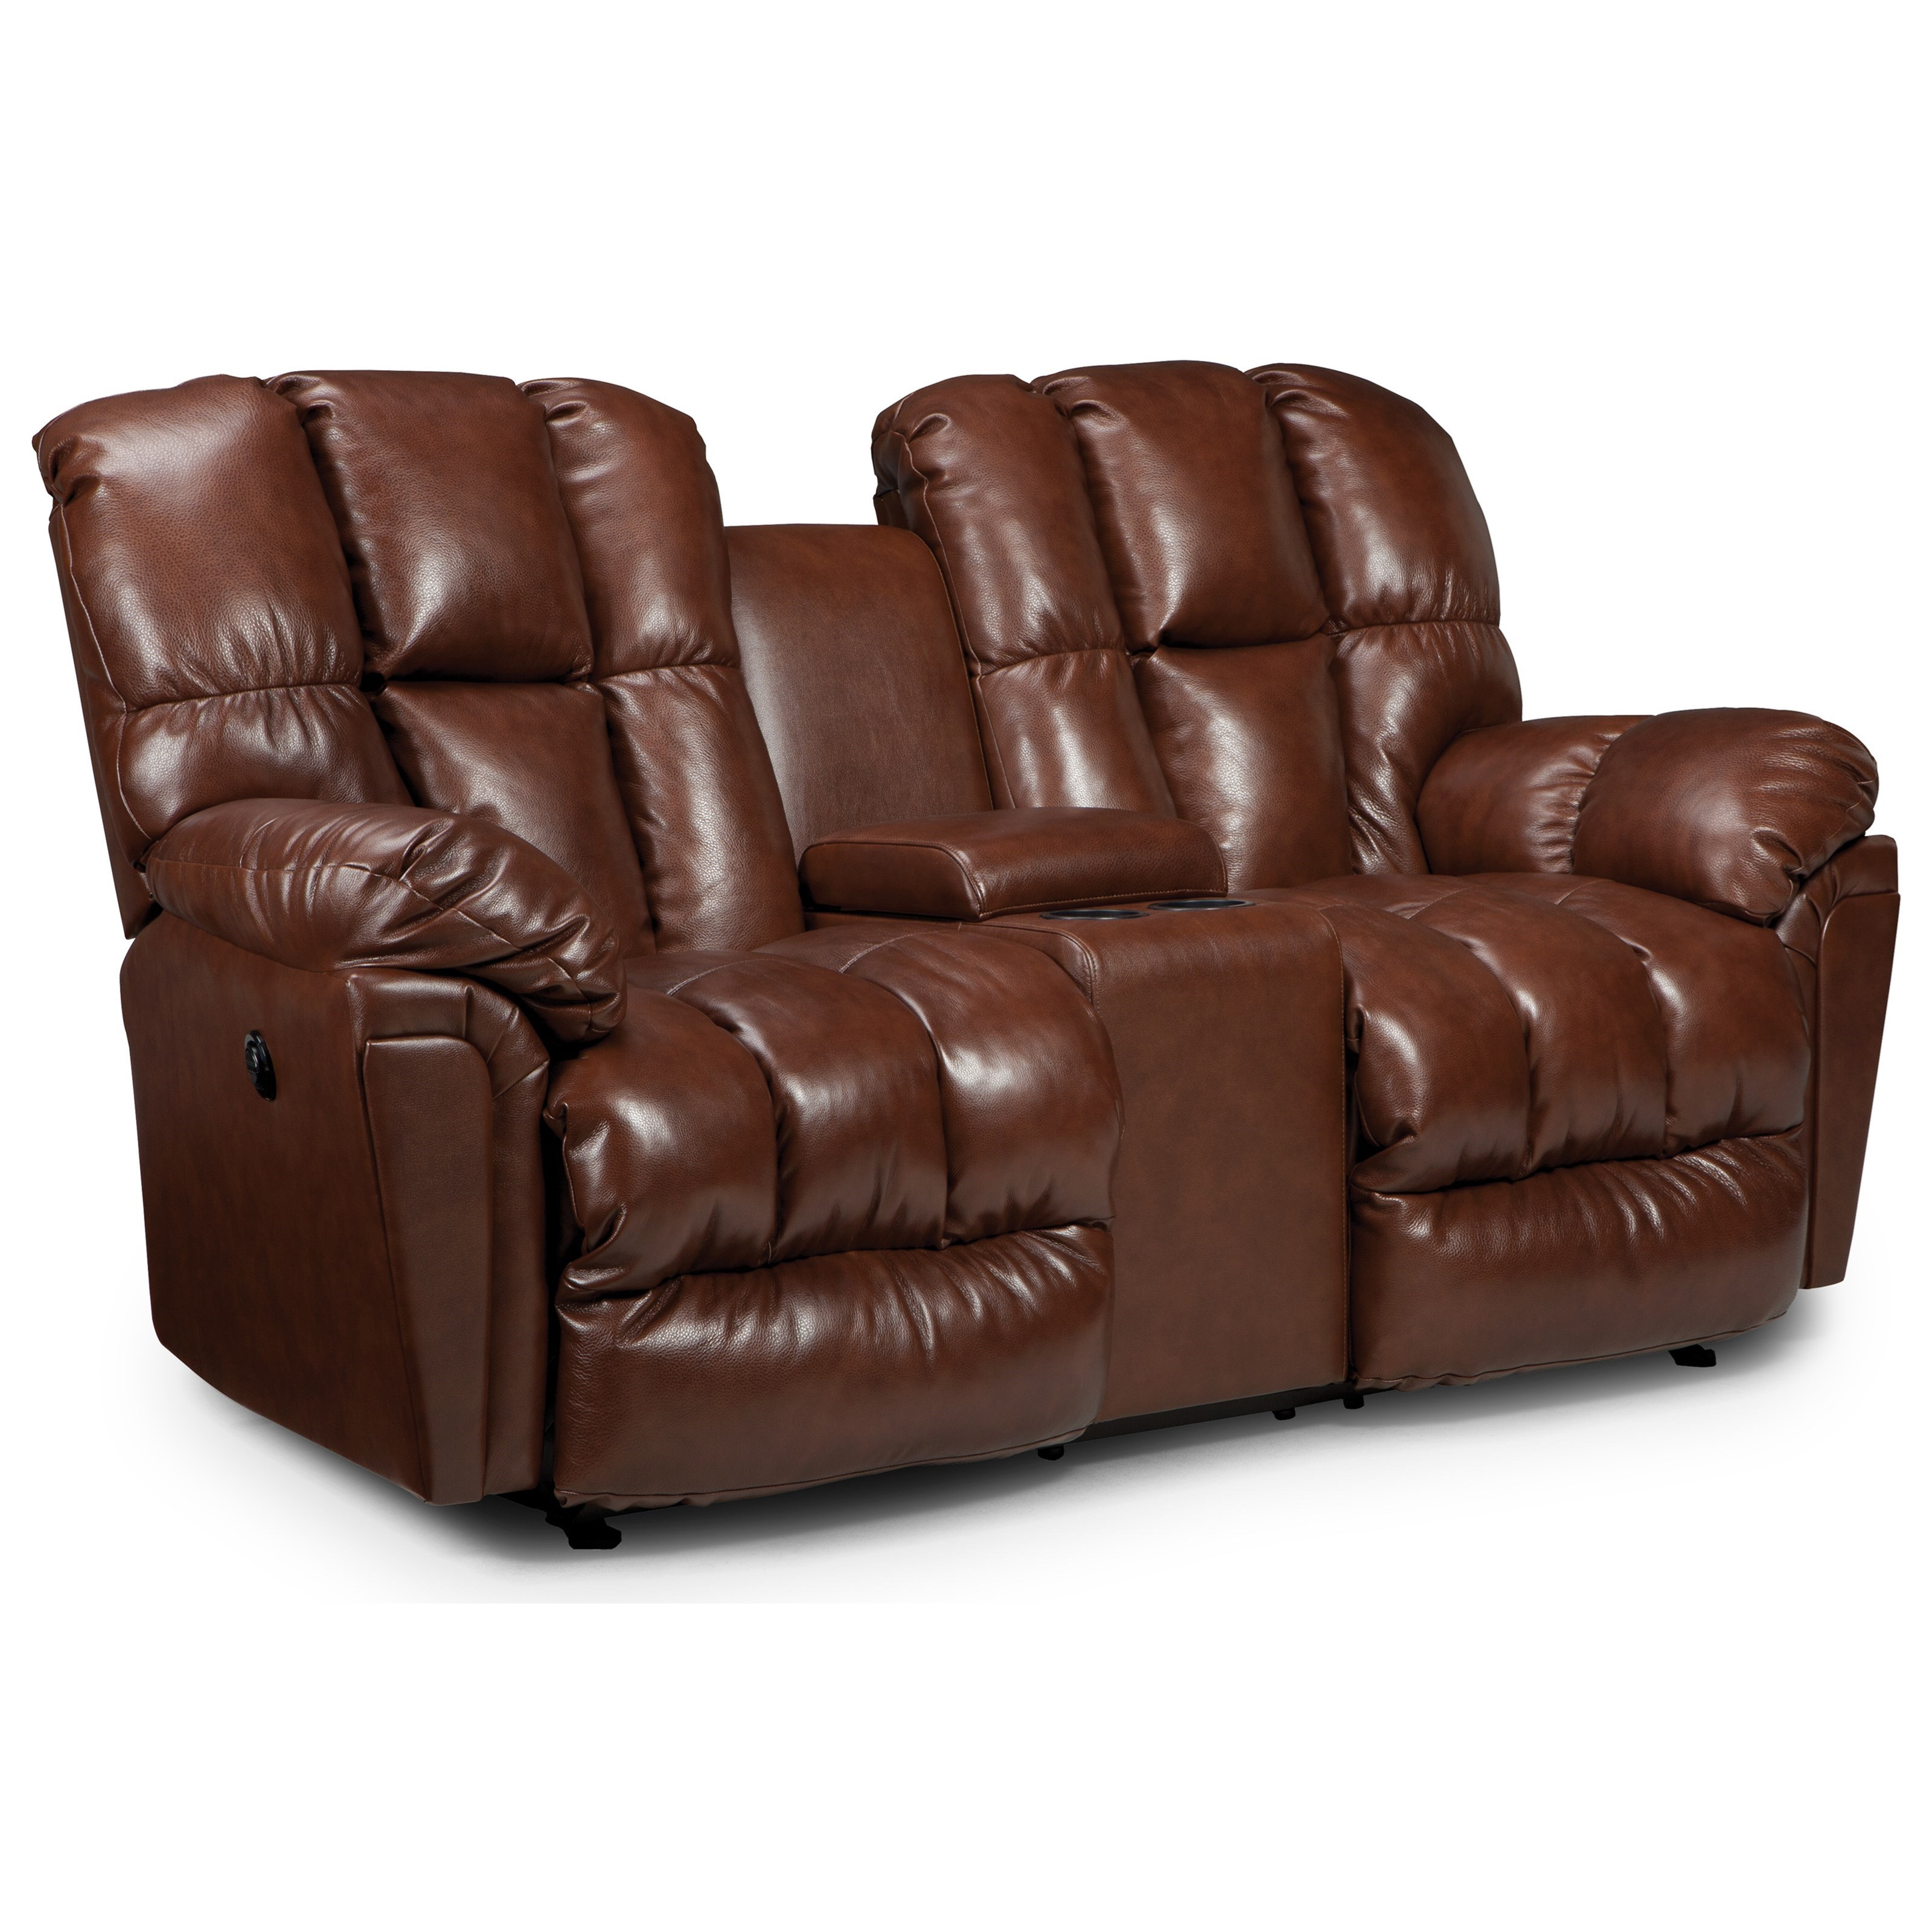 Best Home Furnishings Lucas L856cq7 Plush Power Rocking Reclining Loveseat With Drink Console